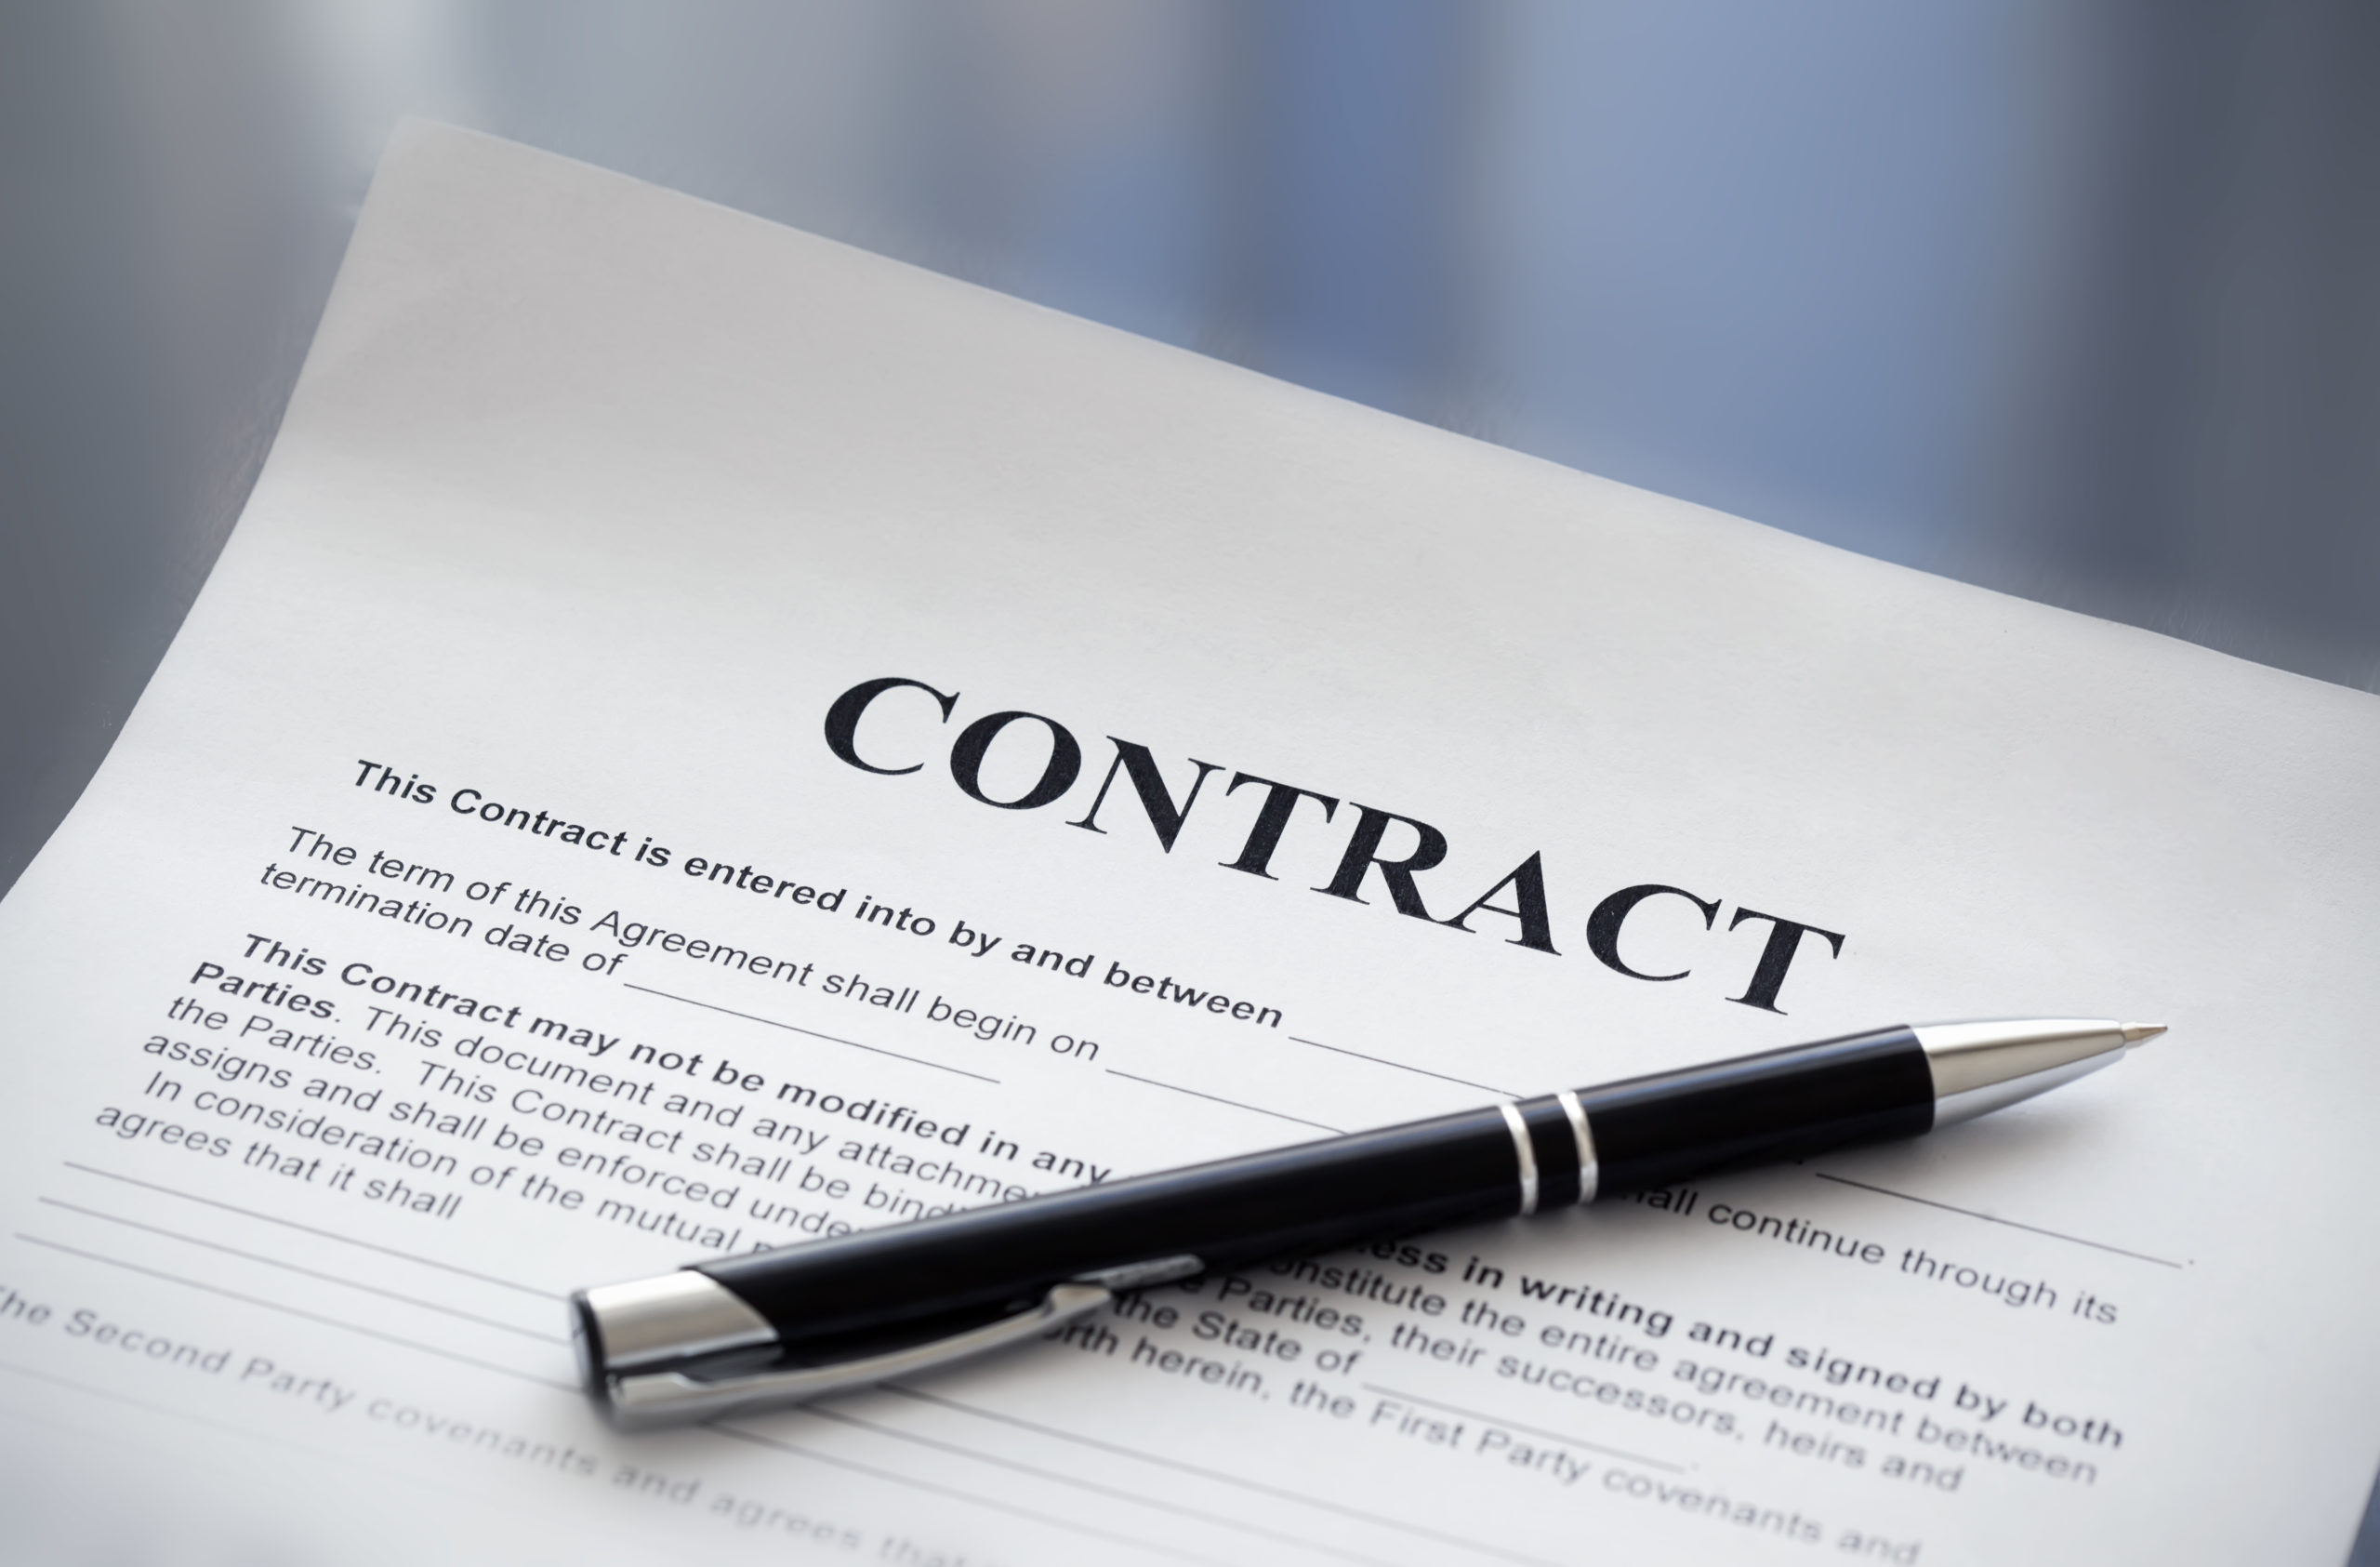 Picture of black pen on a paper with the word contract at the top.Basics of Surety Bonds